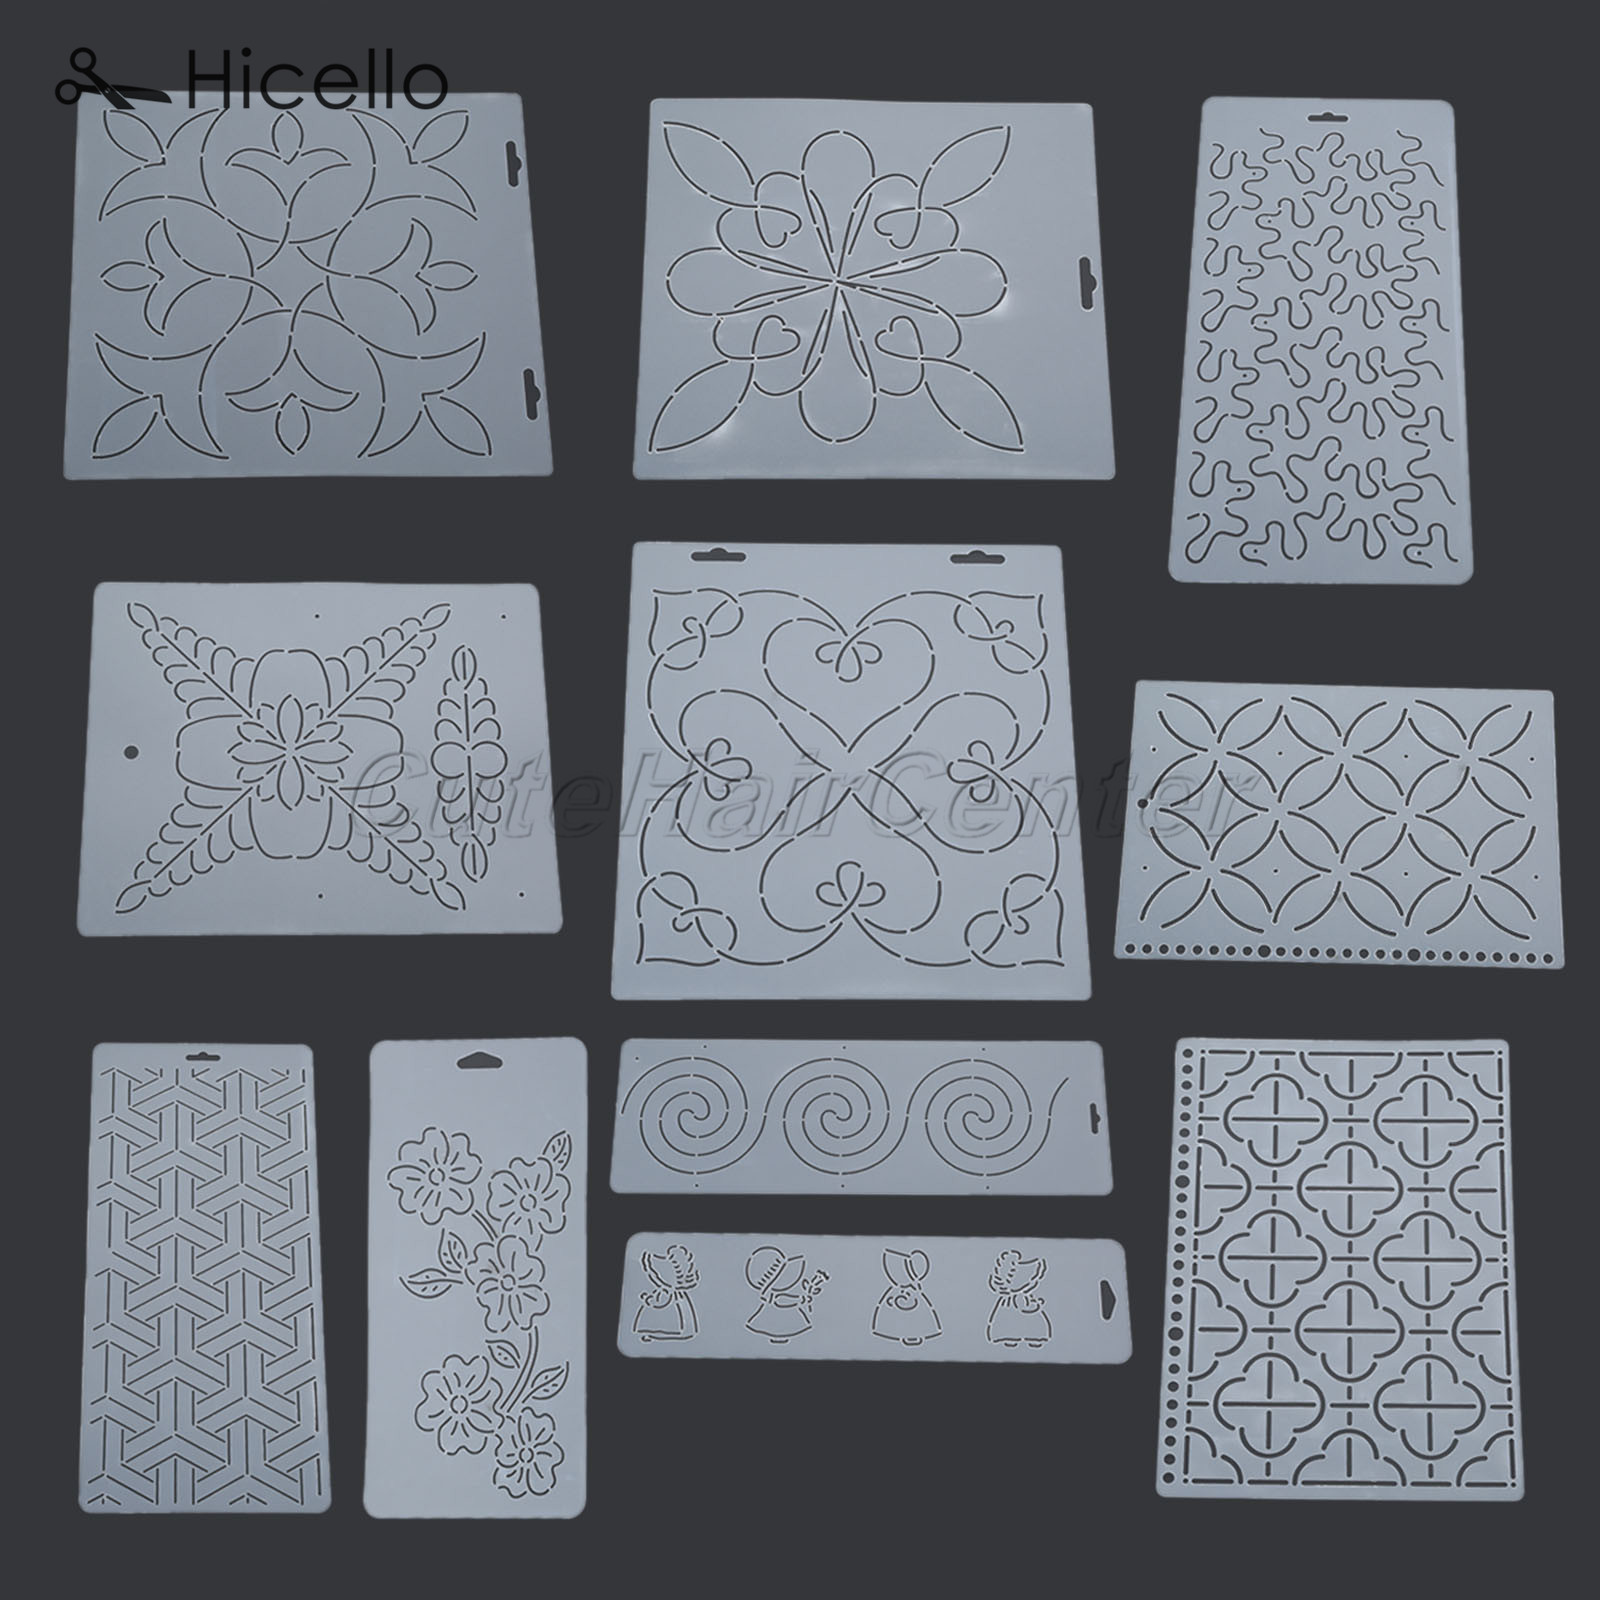 Plastic Stencil Quilting Painting Template for Handmade Painting Supplies DIY Patchwork Sewing Craft Tool